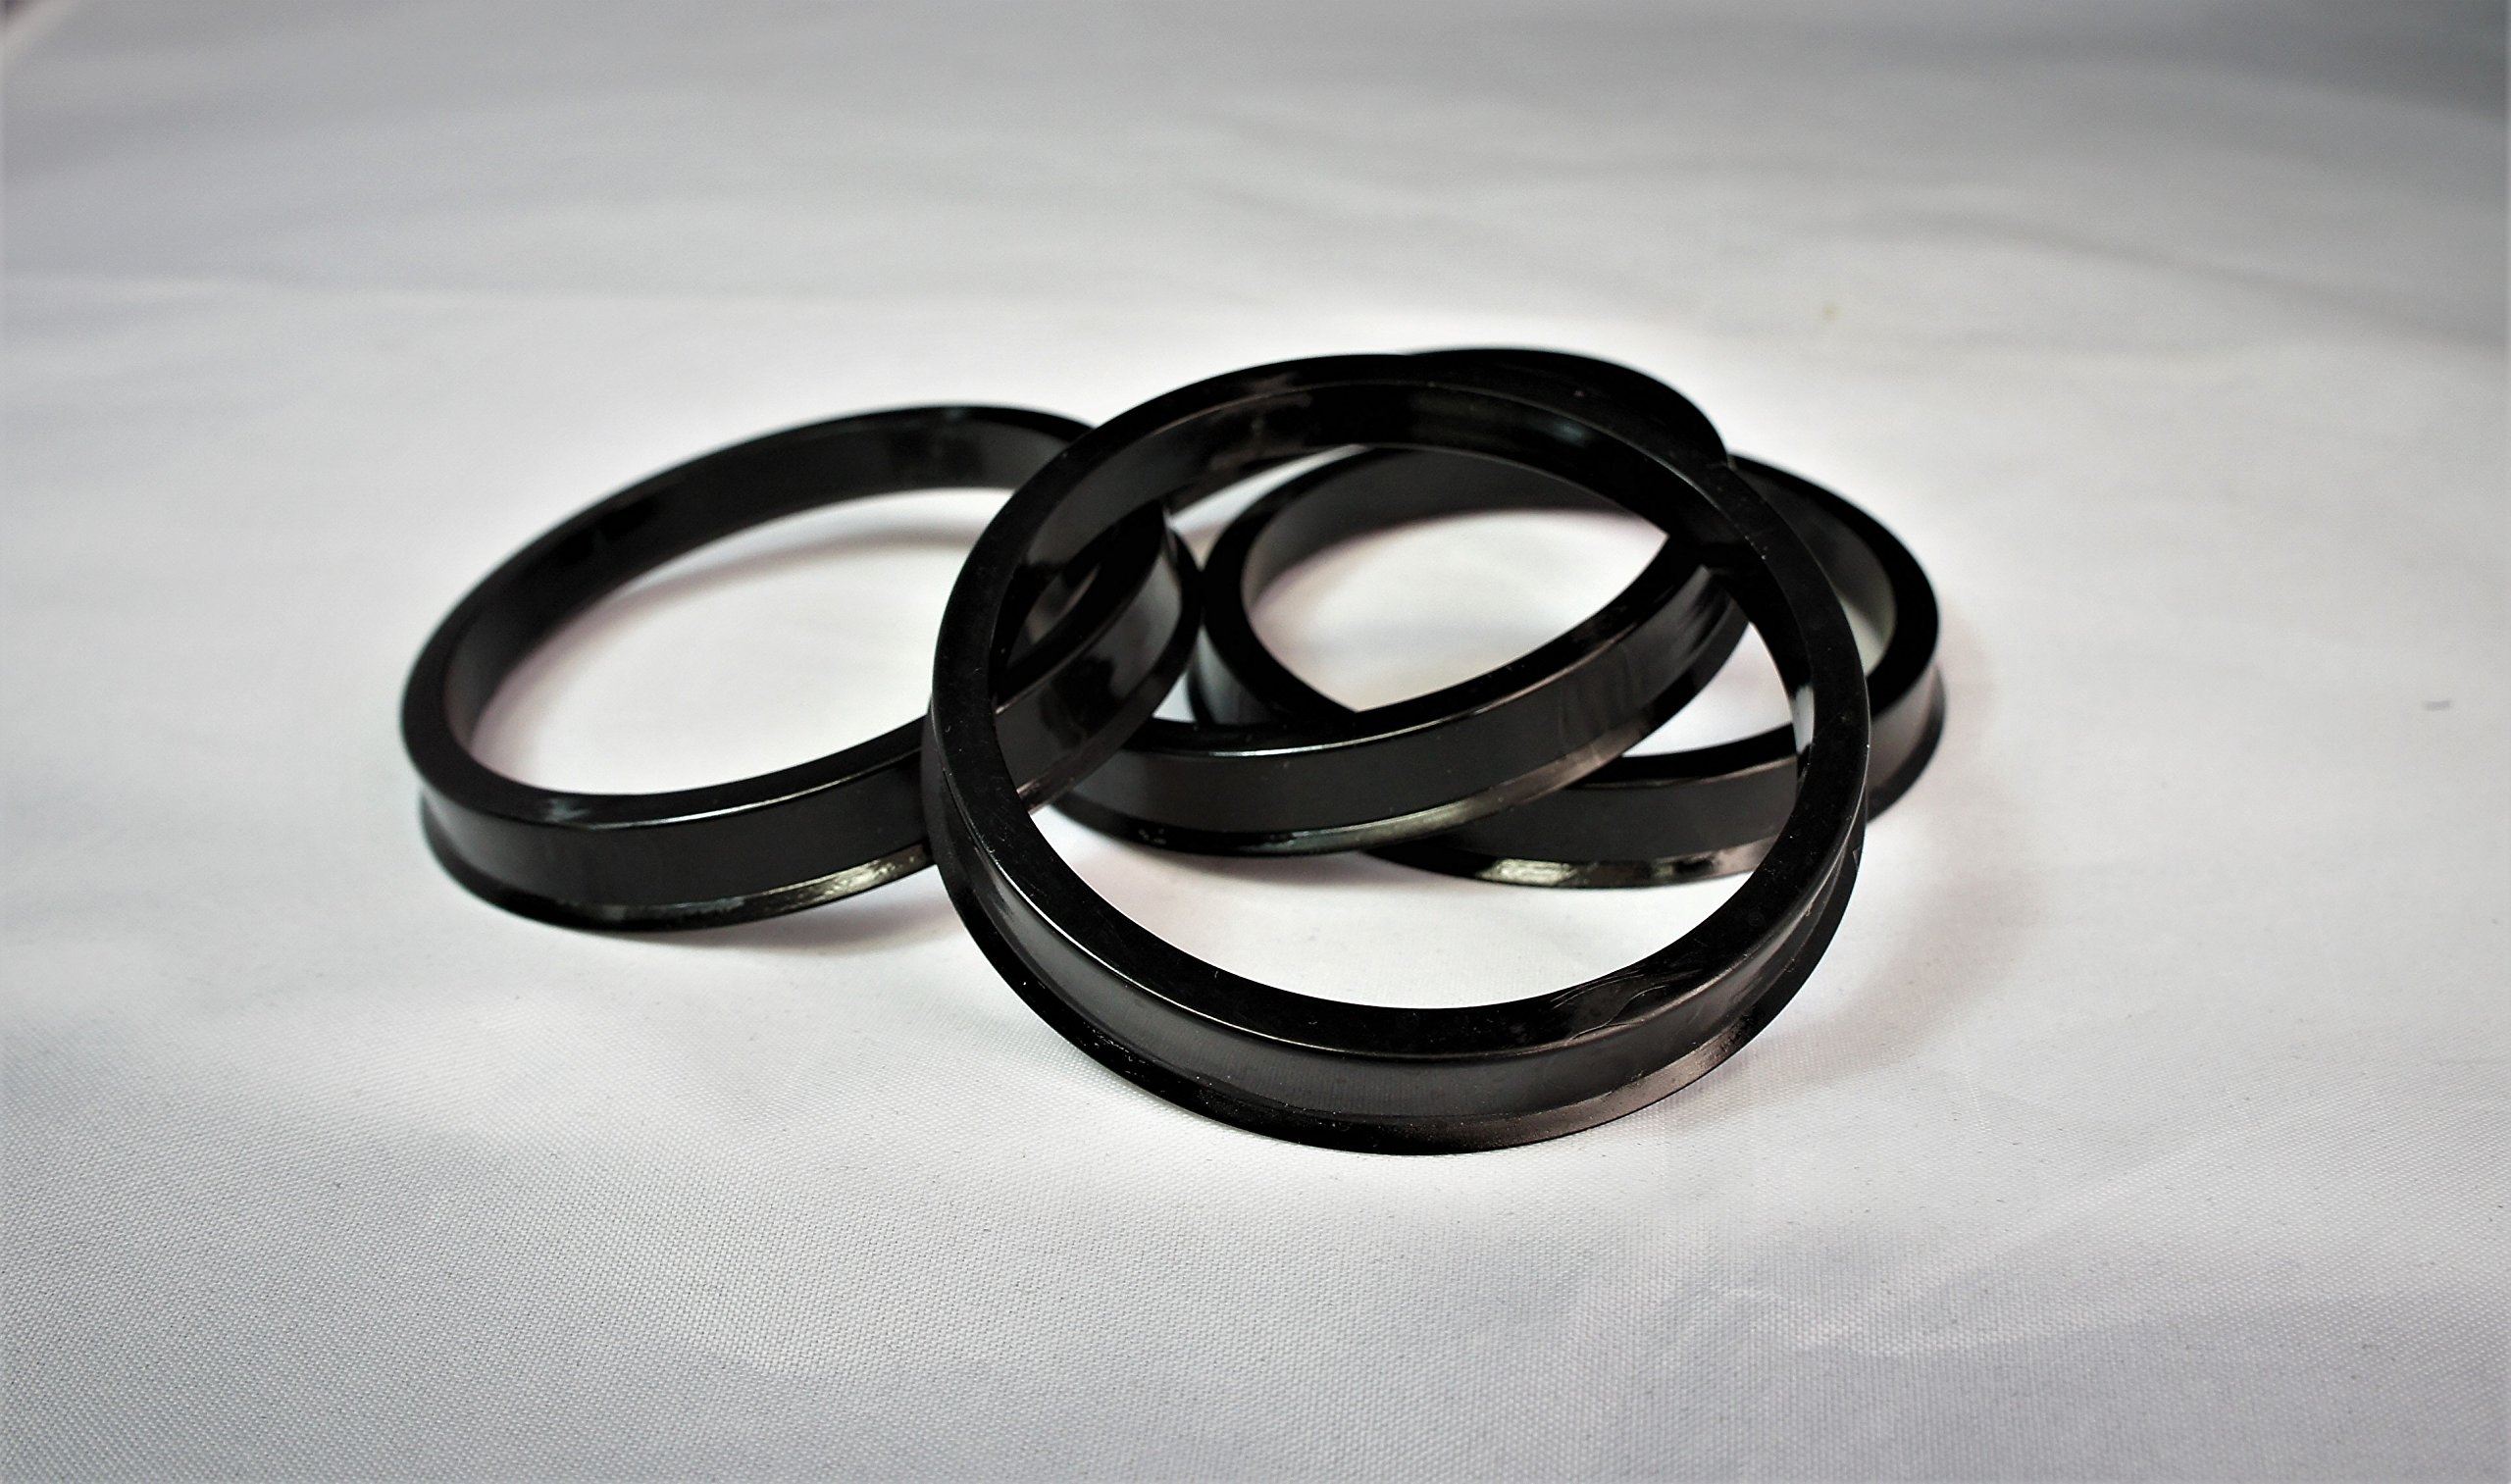 Customadeonly (4) Hub Centric Rings 64.1mm (Wheel) to 60.1mm (Hub) | Hubcentric 60.1 to 64.1